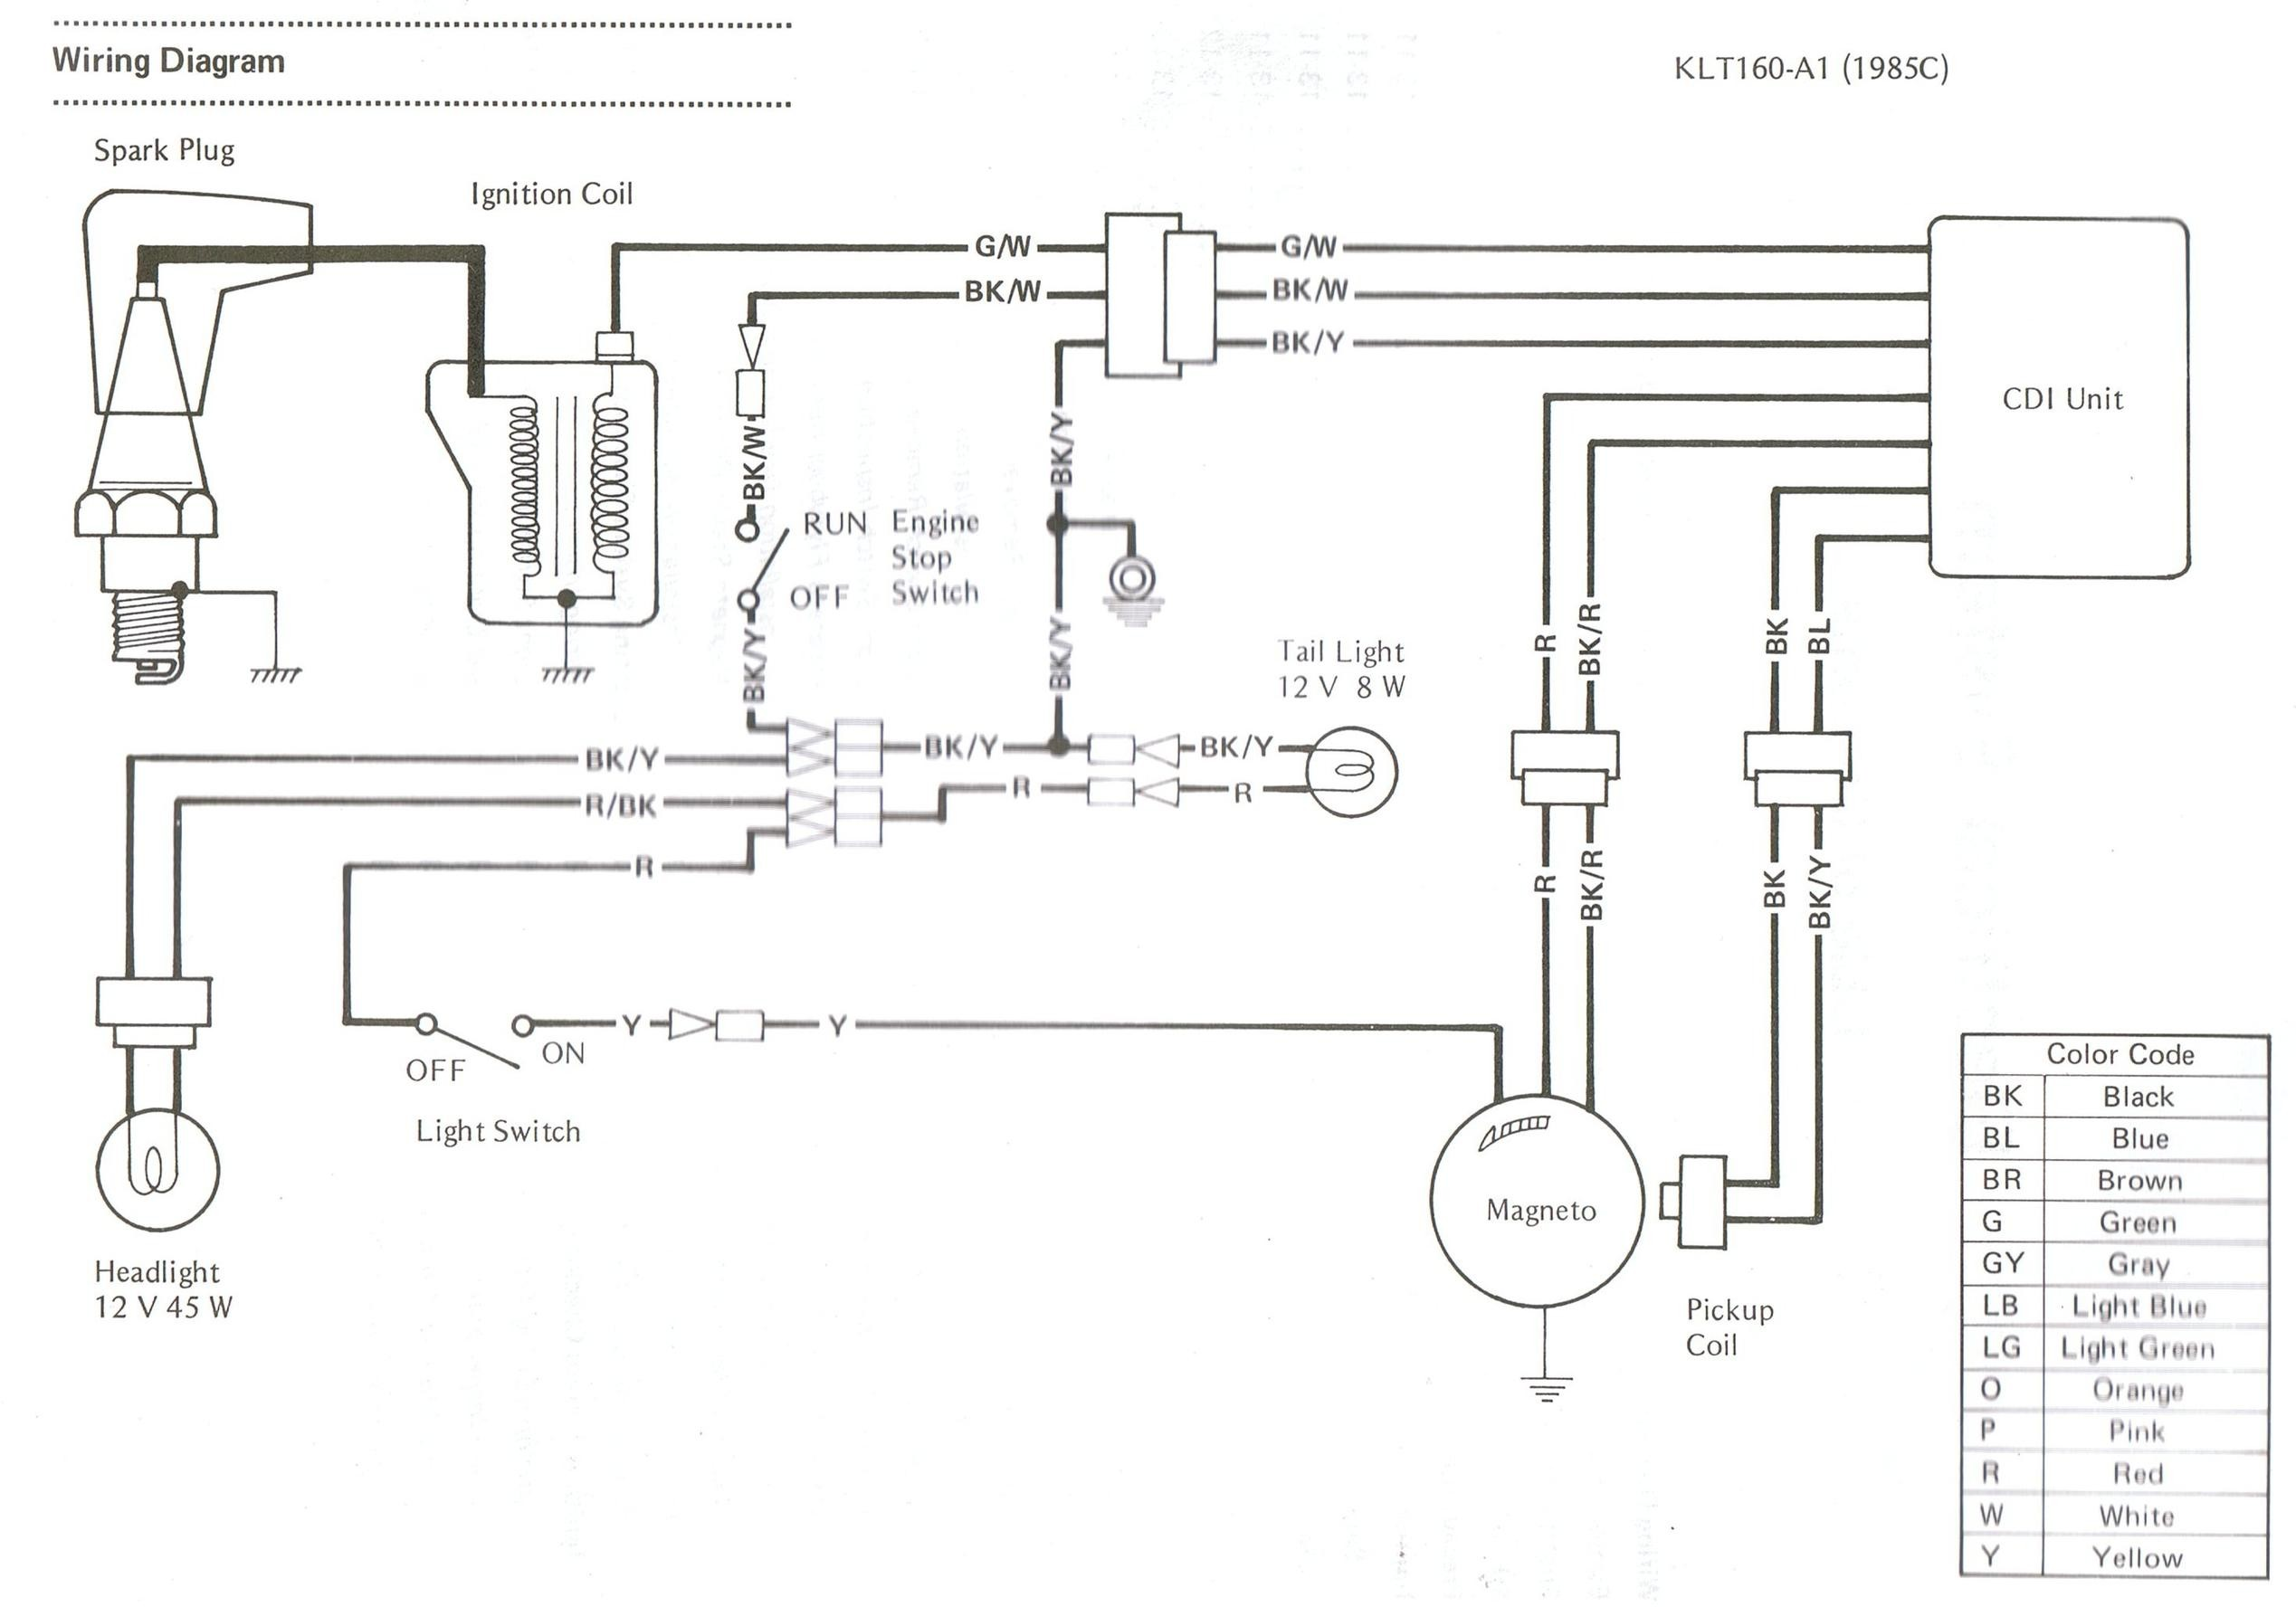 Wiring Diagram 1985 Alfa Romeo Spider Get Free Image About 166 Pdf 1984 Explained Diagrams Rh Dmdelectro Co